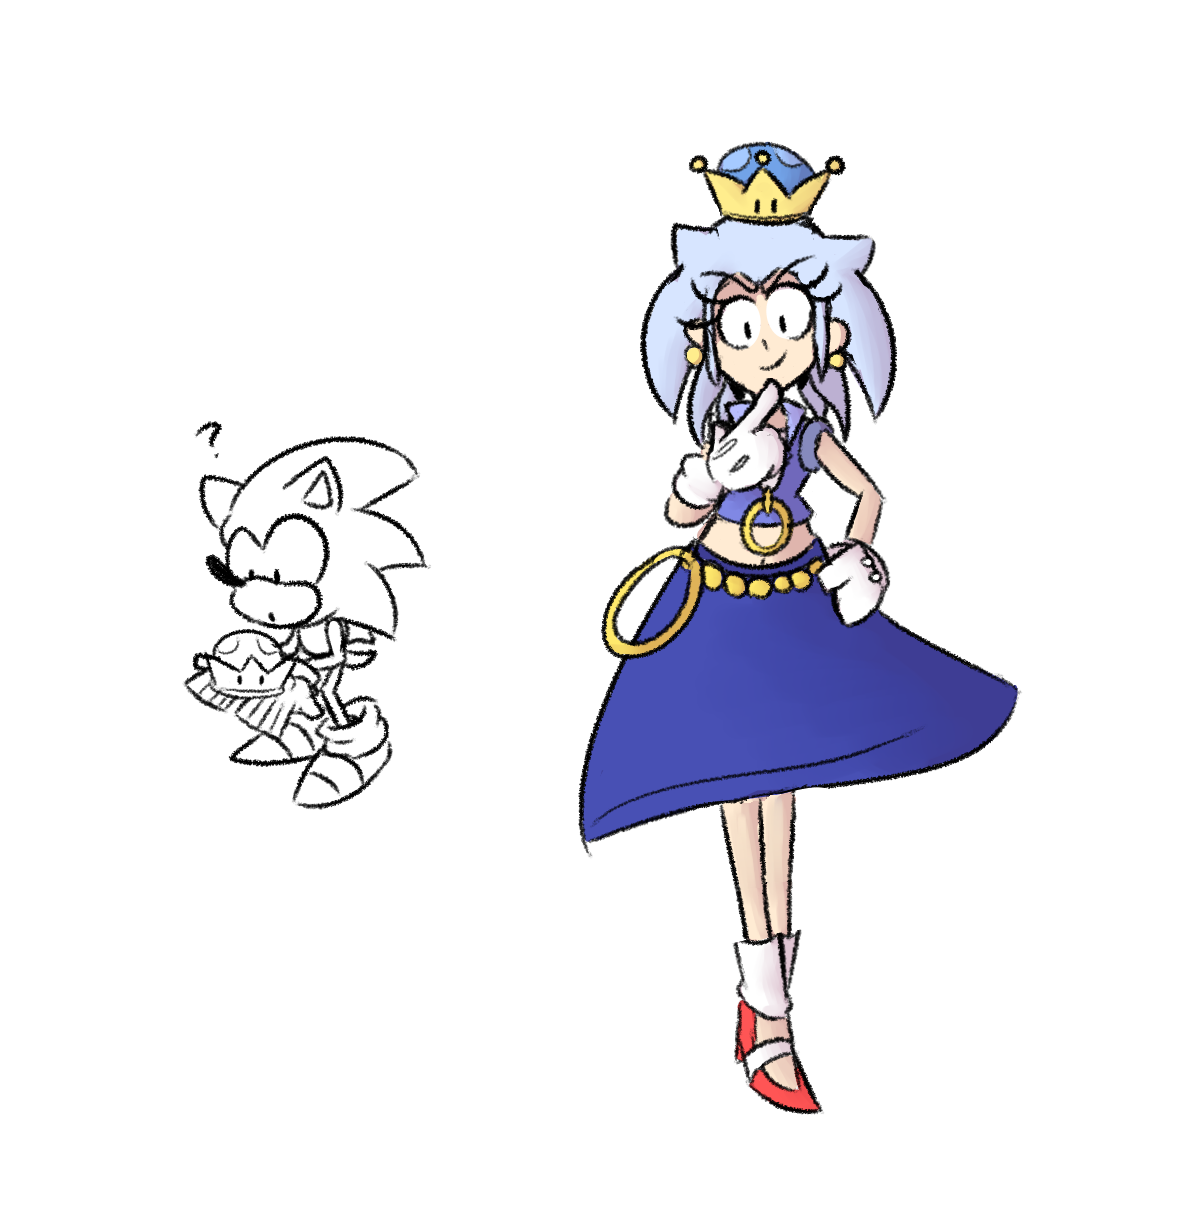 Sonic Ends Up Finding A Strange Crown Peachette Super Crown Sonic Game Character Super Smash Bros